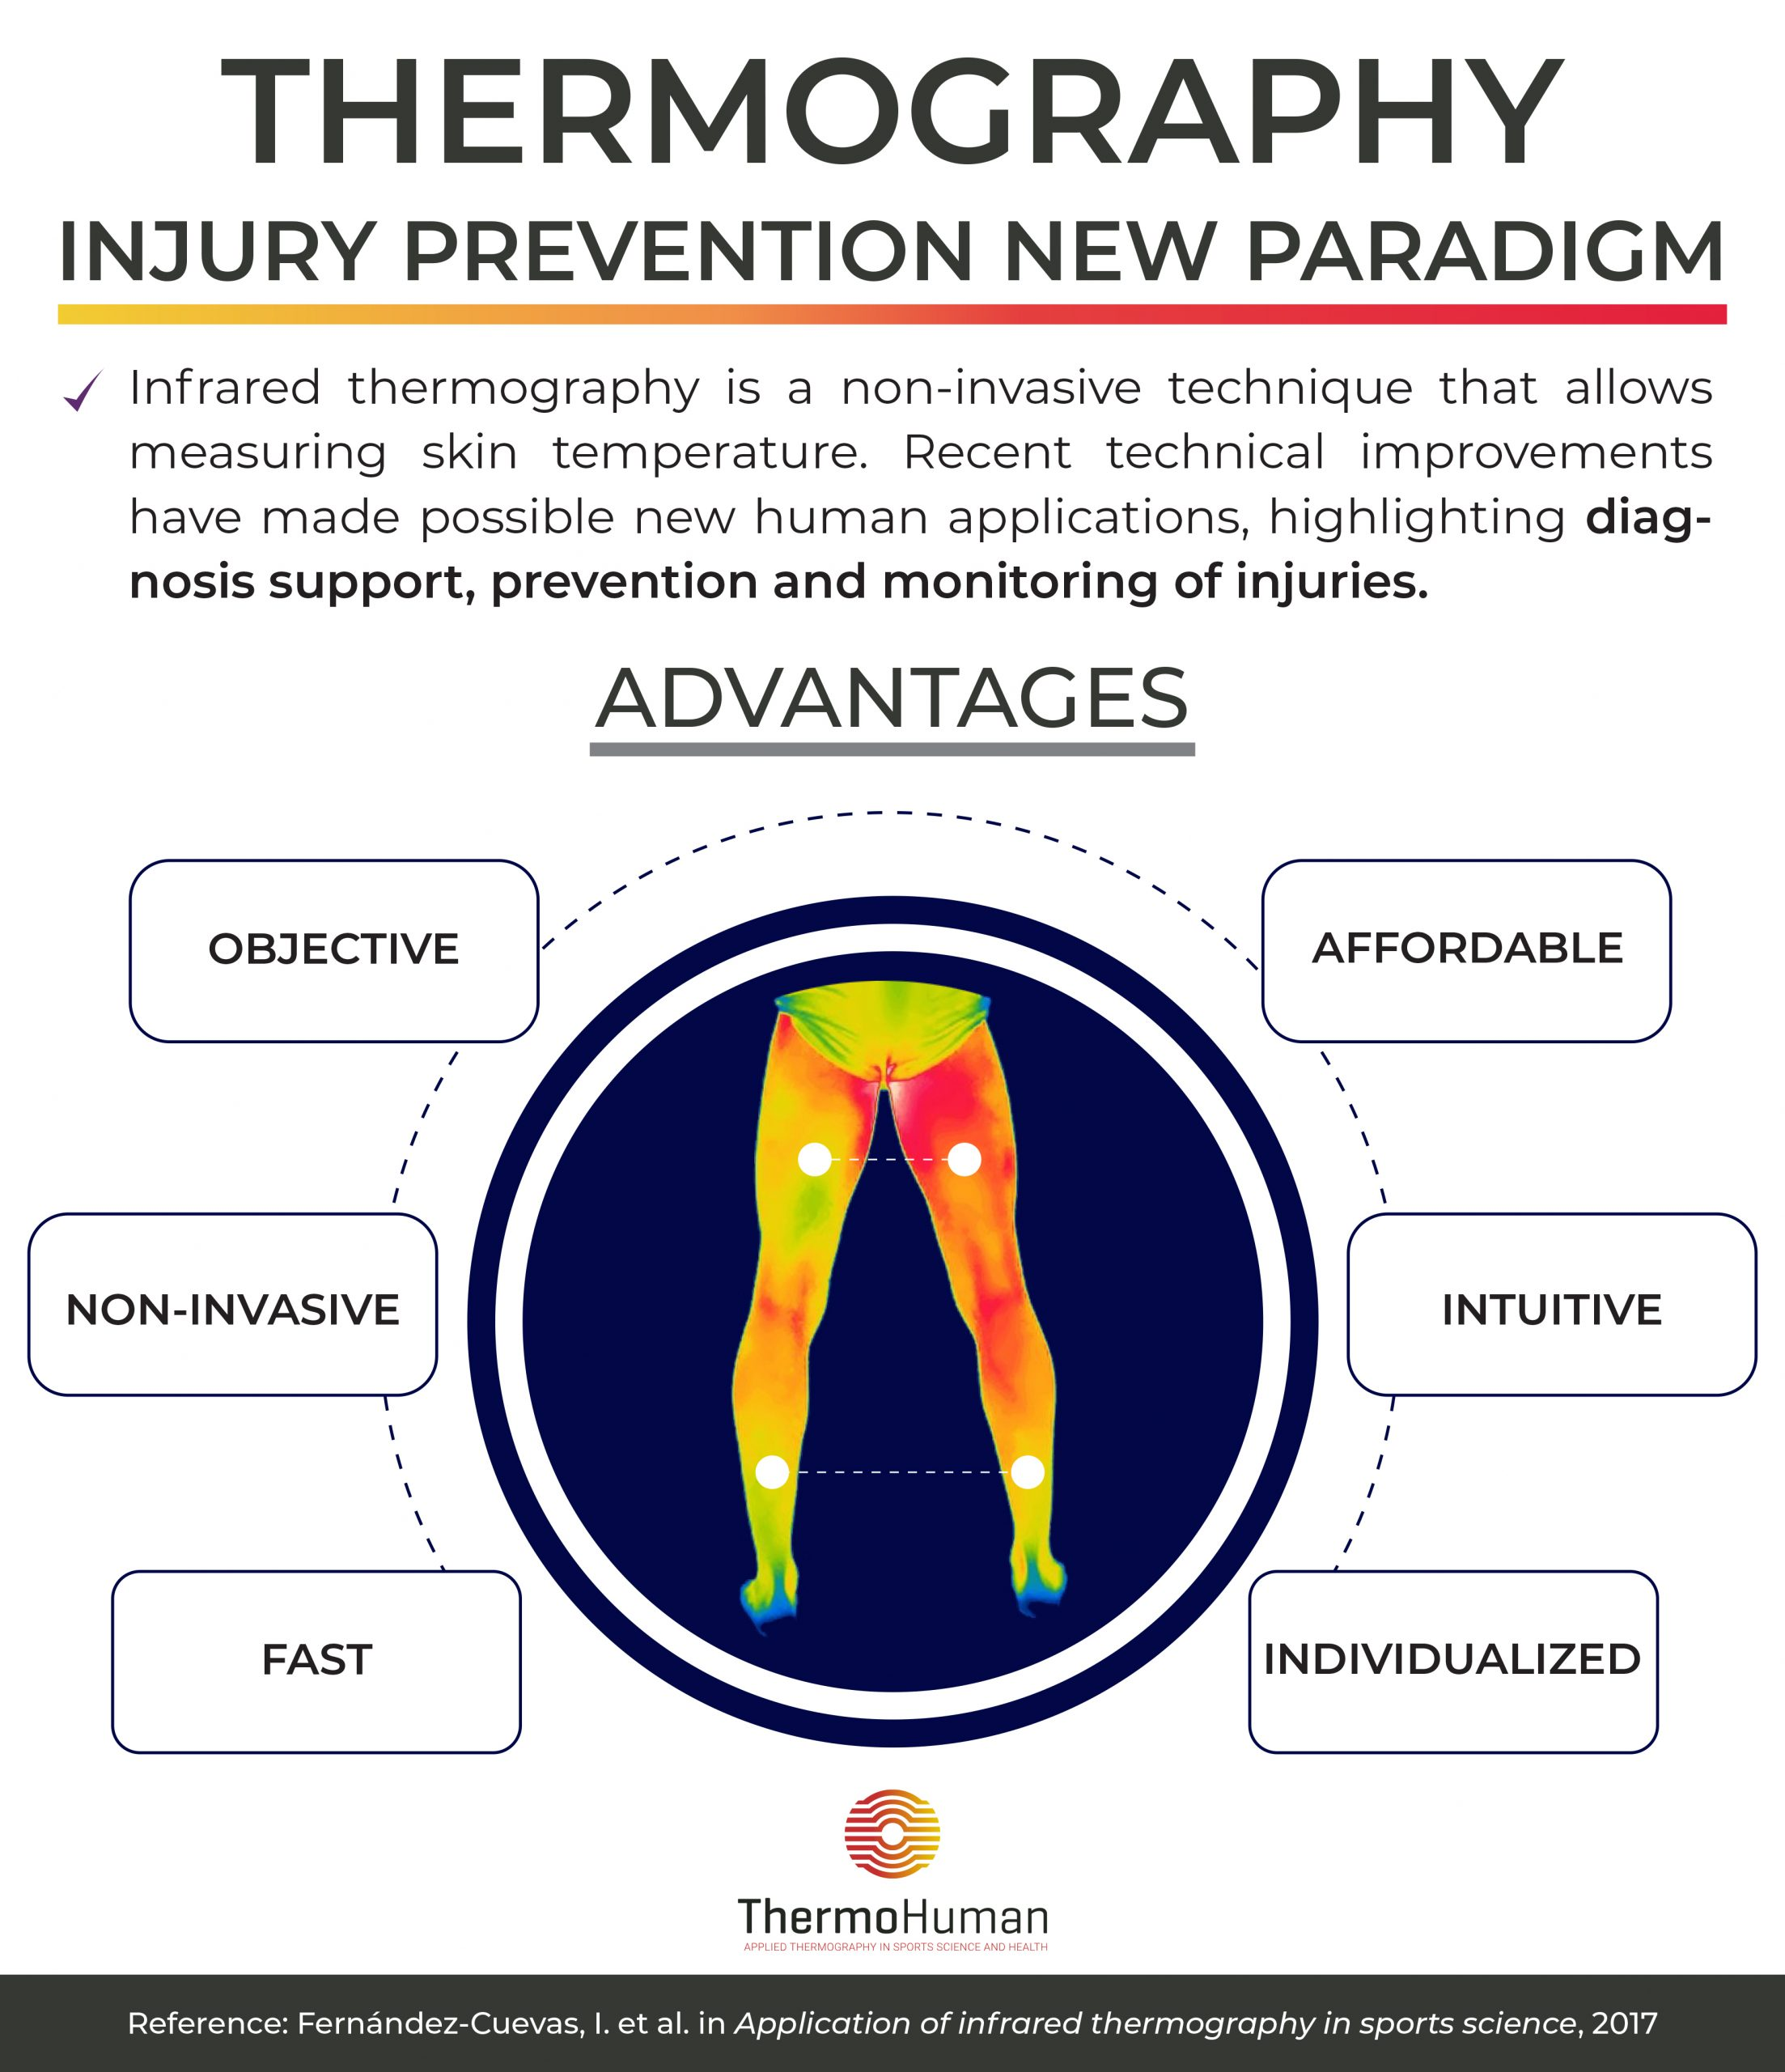 Thermography, injury prevention new paradigm